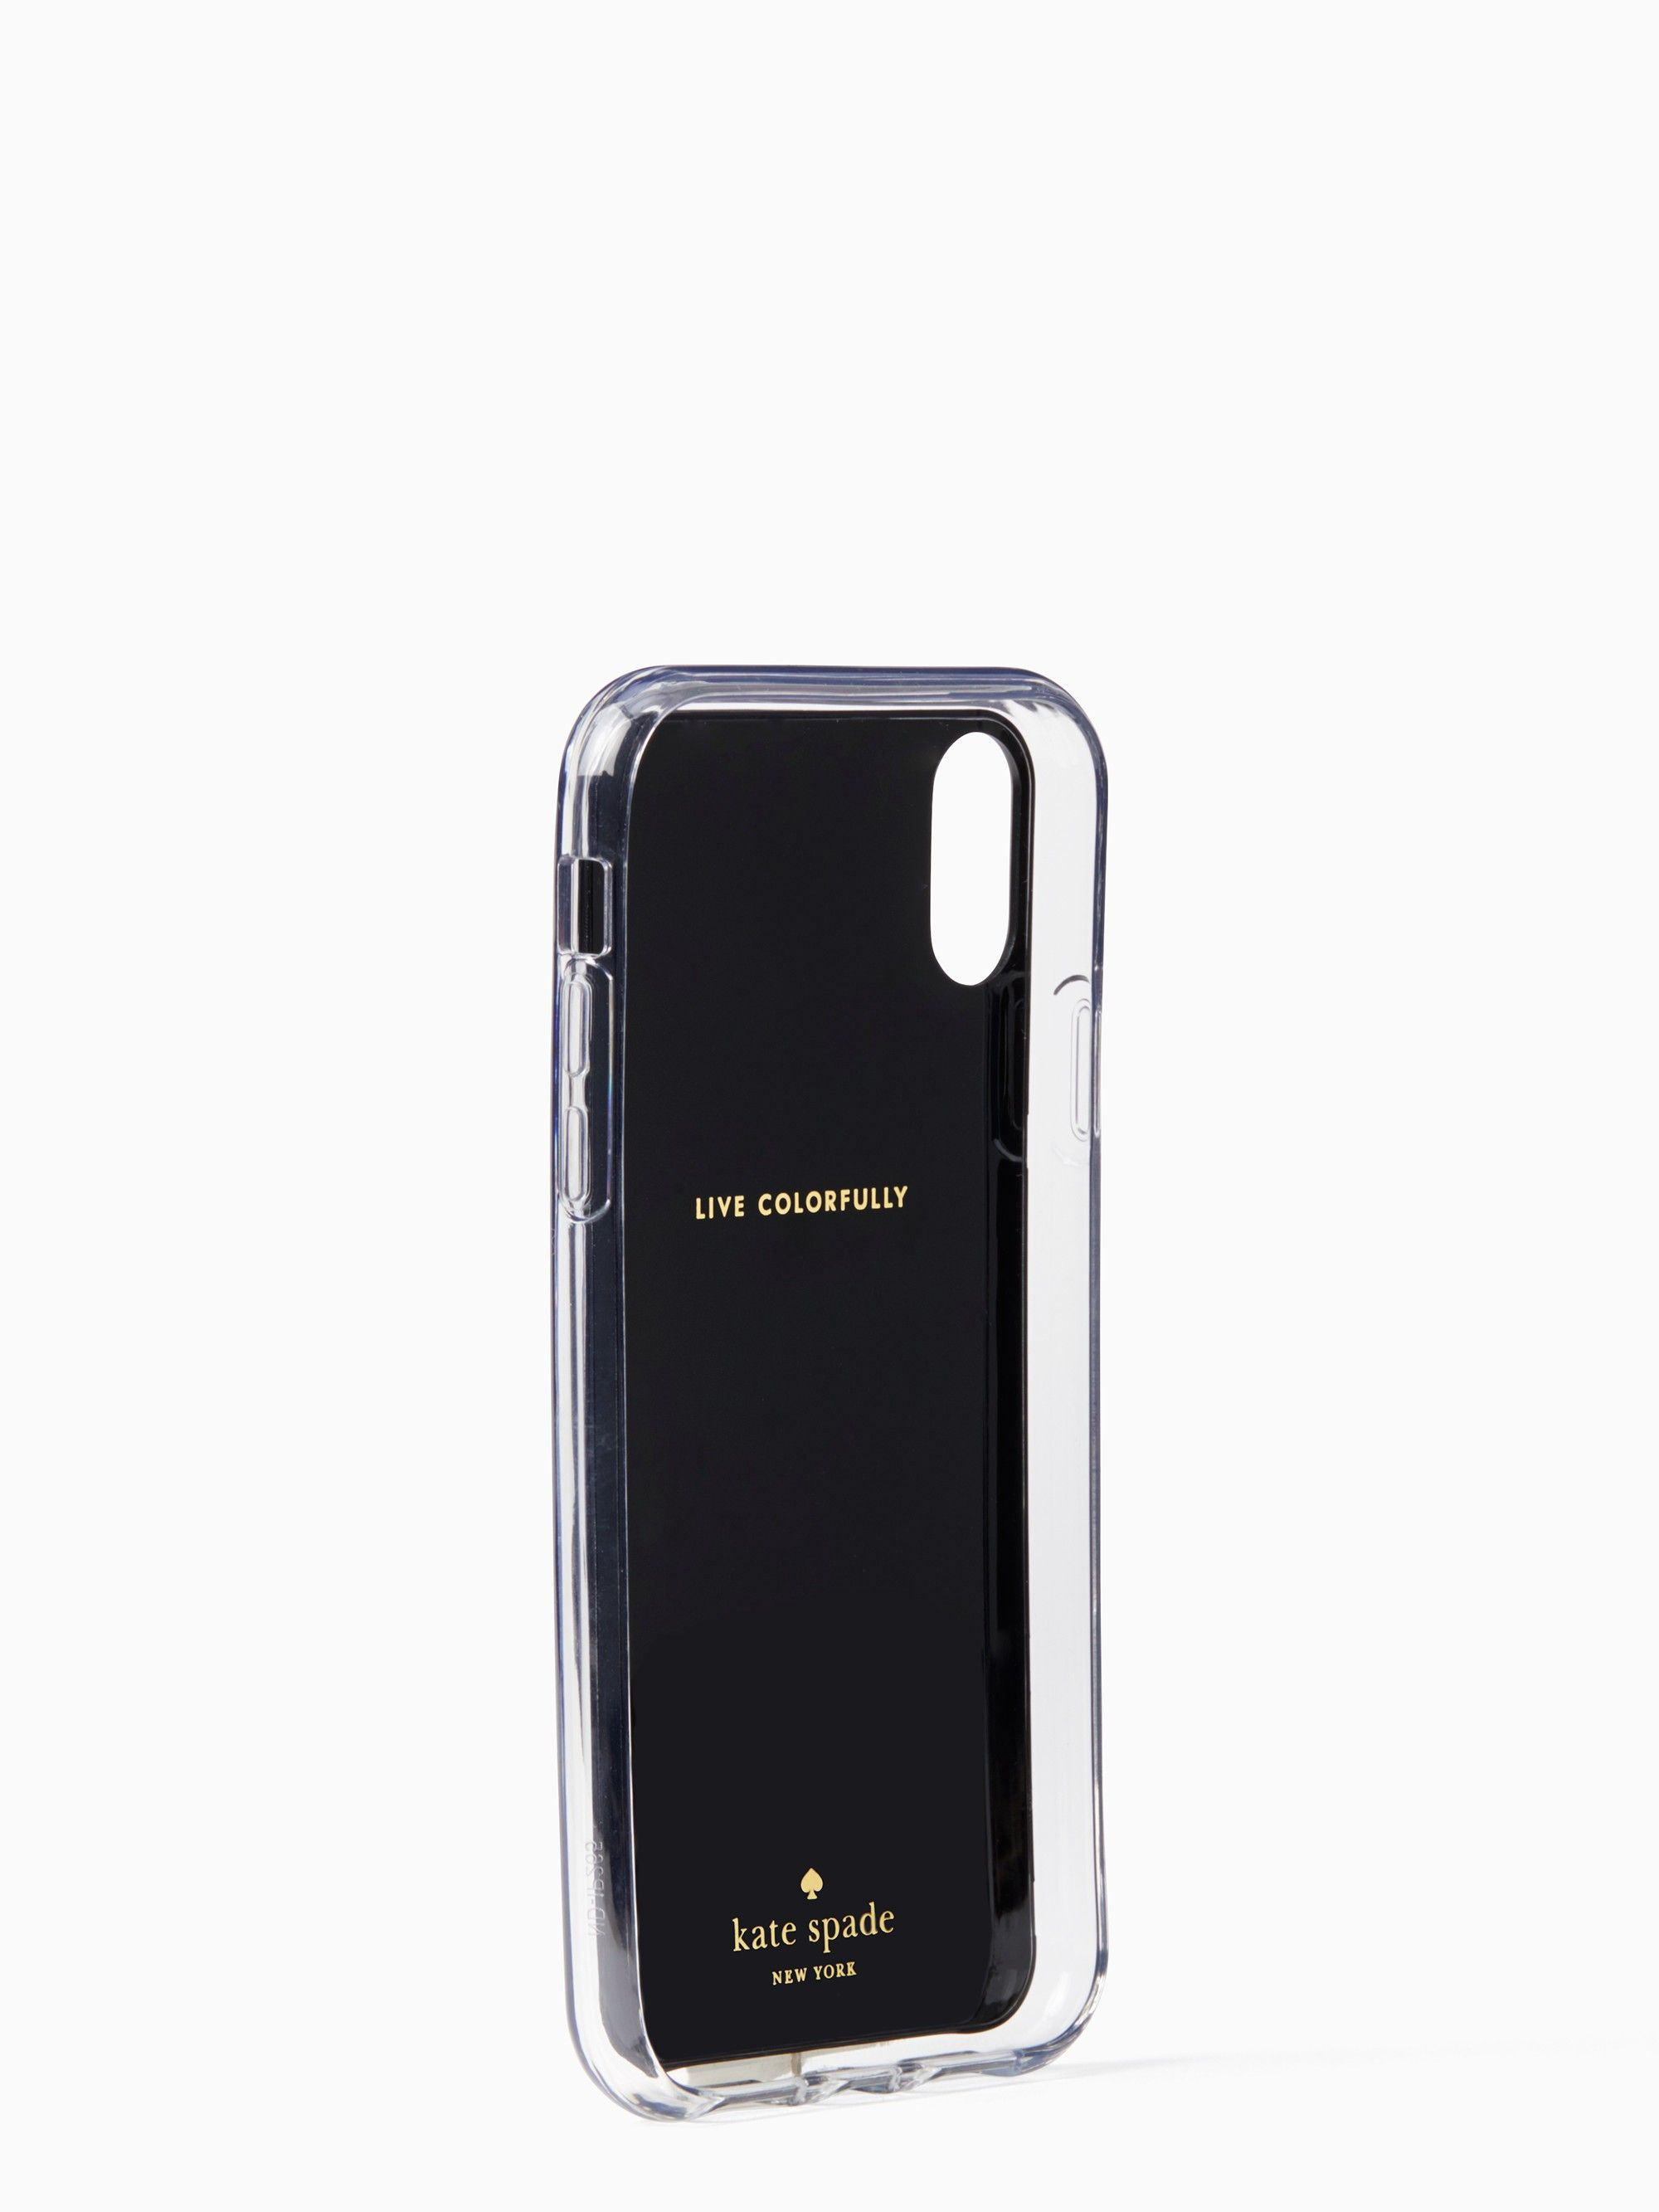 Tortoise Shell Hands Free Iphone Xr Case By Kate Spade Products